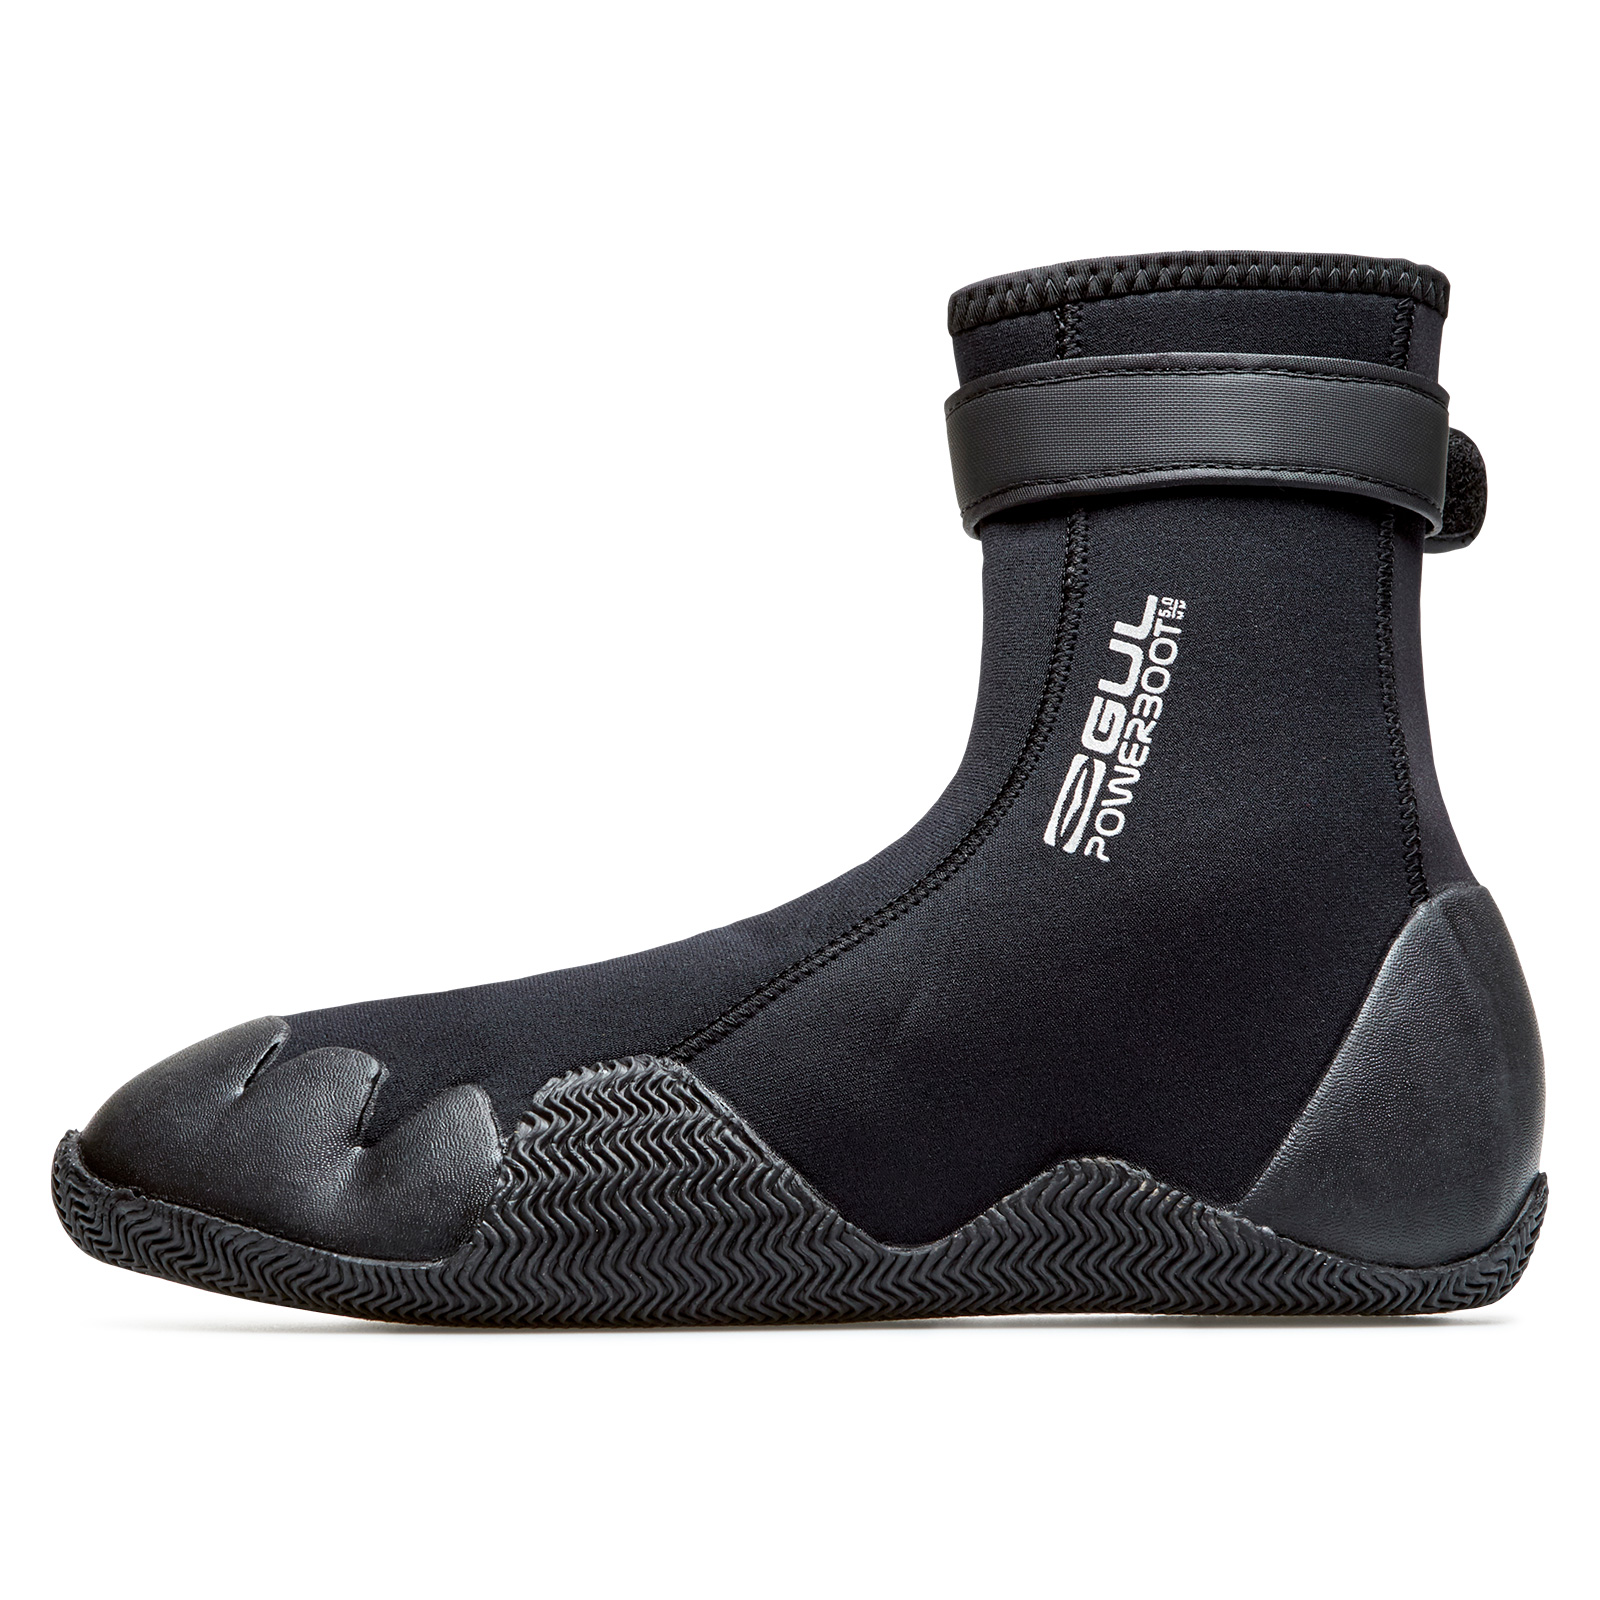 Gul-5mm-Power-Neoprene-Adult-Wetsuit-Boots-Watersports-Surf-Sail-Swim-Mens-Boot thumbnail 24